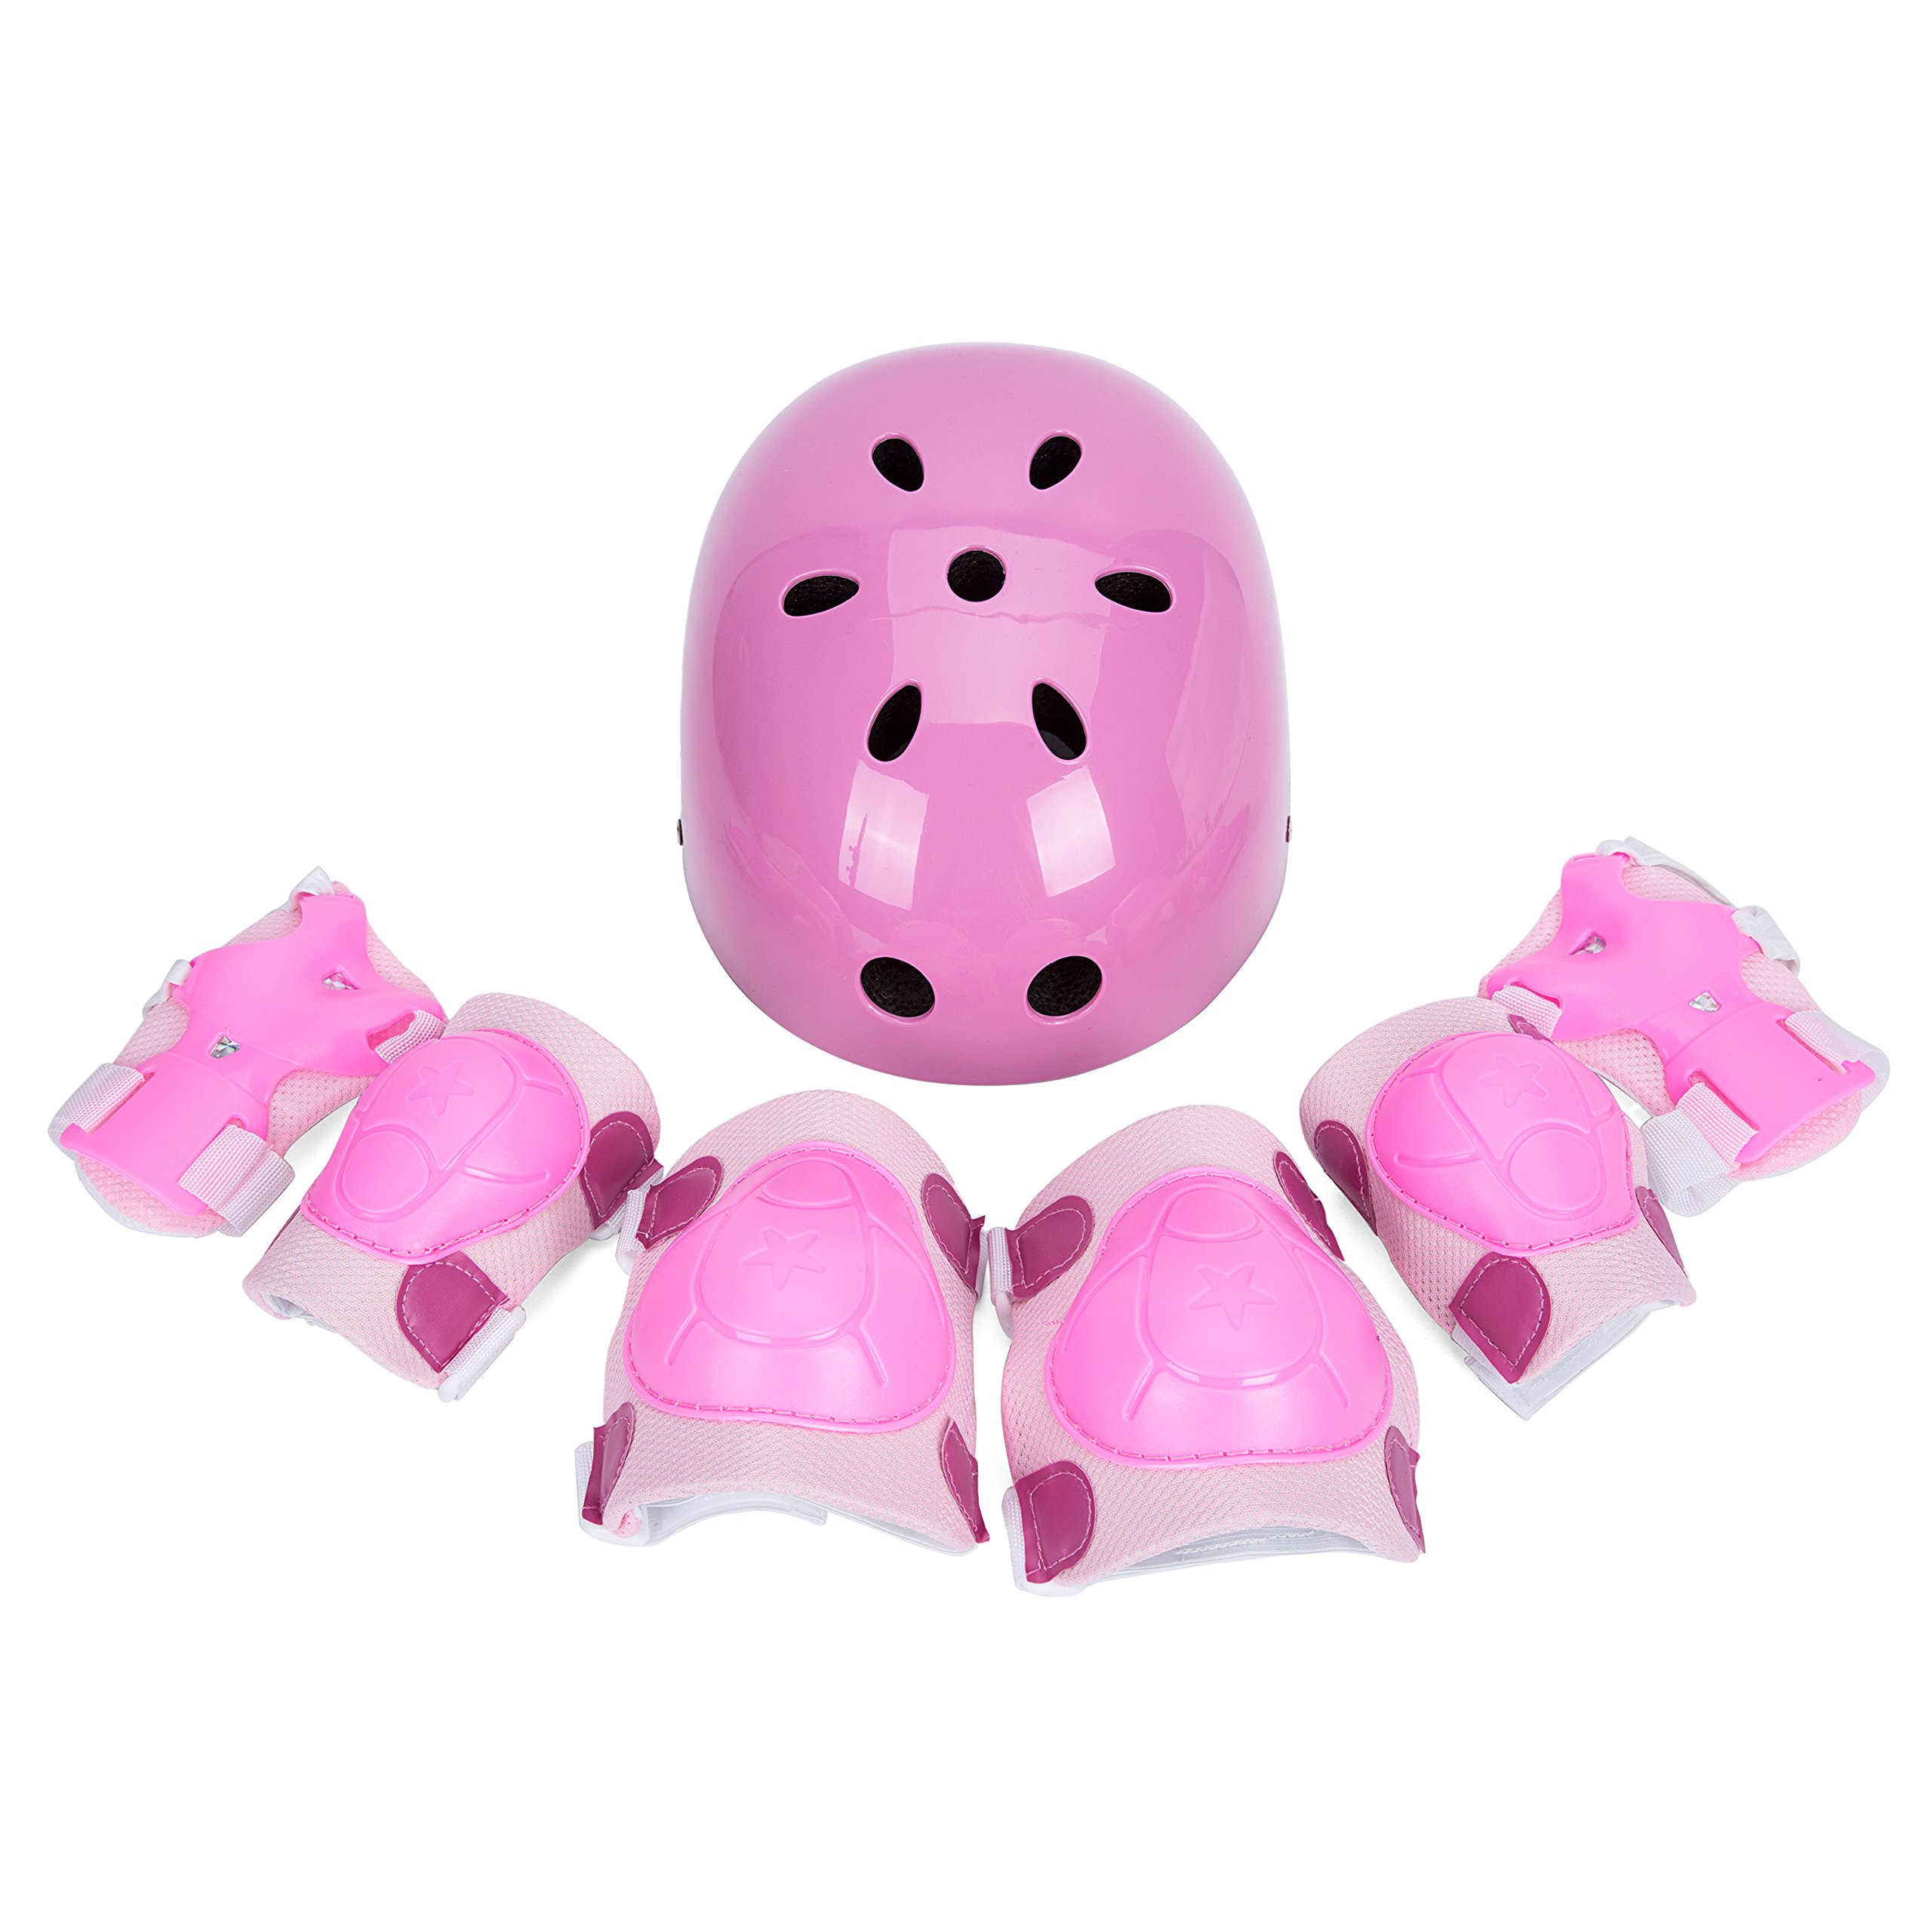 SUNVP Kid's Adjustable Bike Helmets with 7 Pieces Toddler Children Protective Bicycle Helmet Gear Set for Cycle Roller Skating Skateboard with Knee/Elbow/Wrist Pads(Pink)